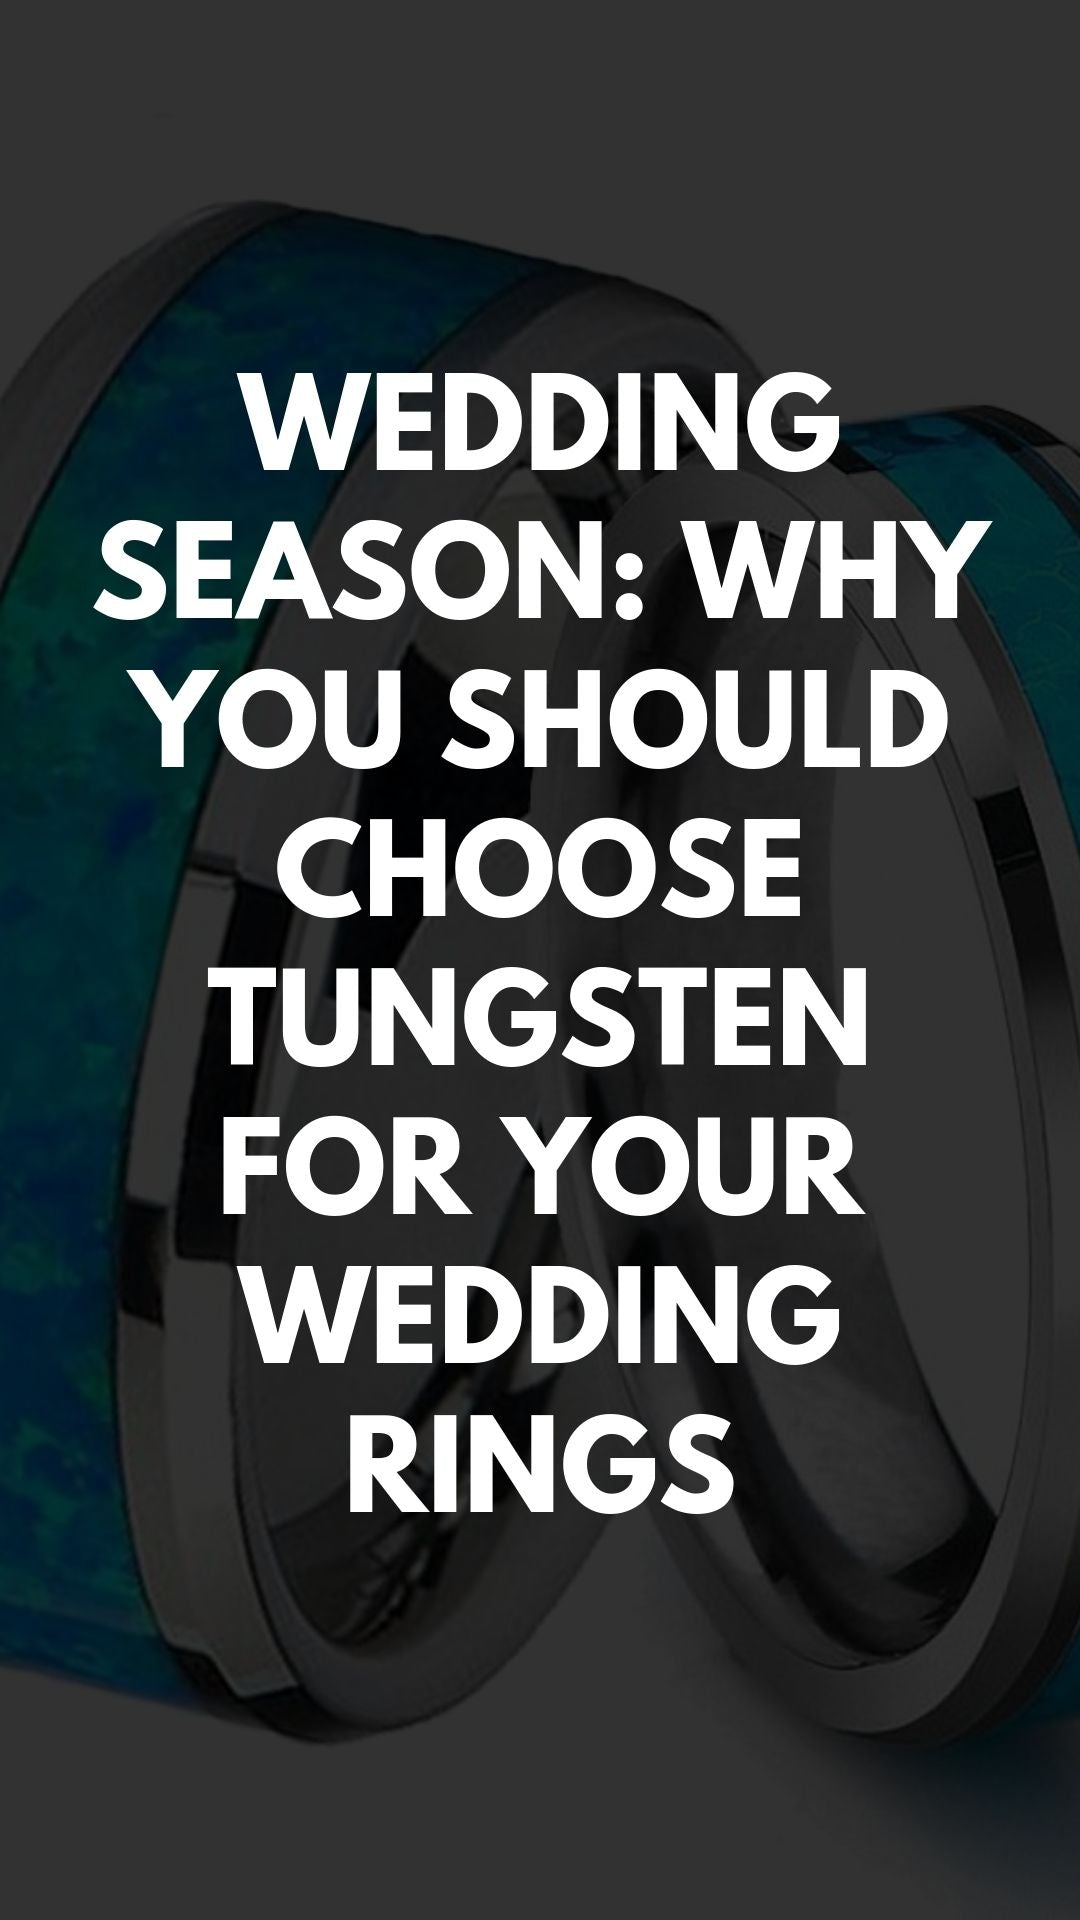 Wedding Season: Why You Should Choose Tungsten for Your Wedding Rings